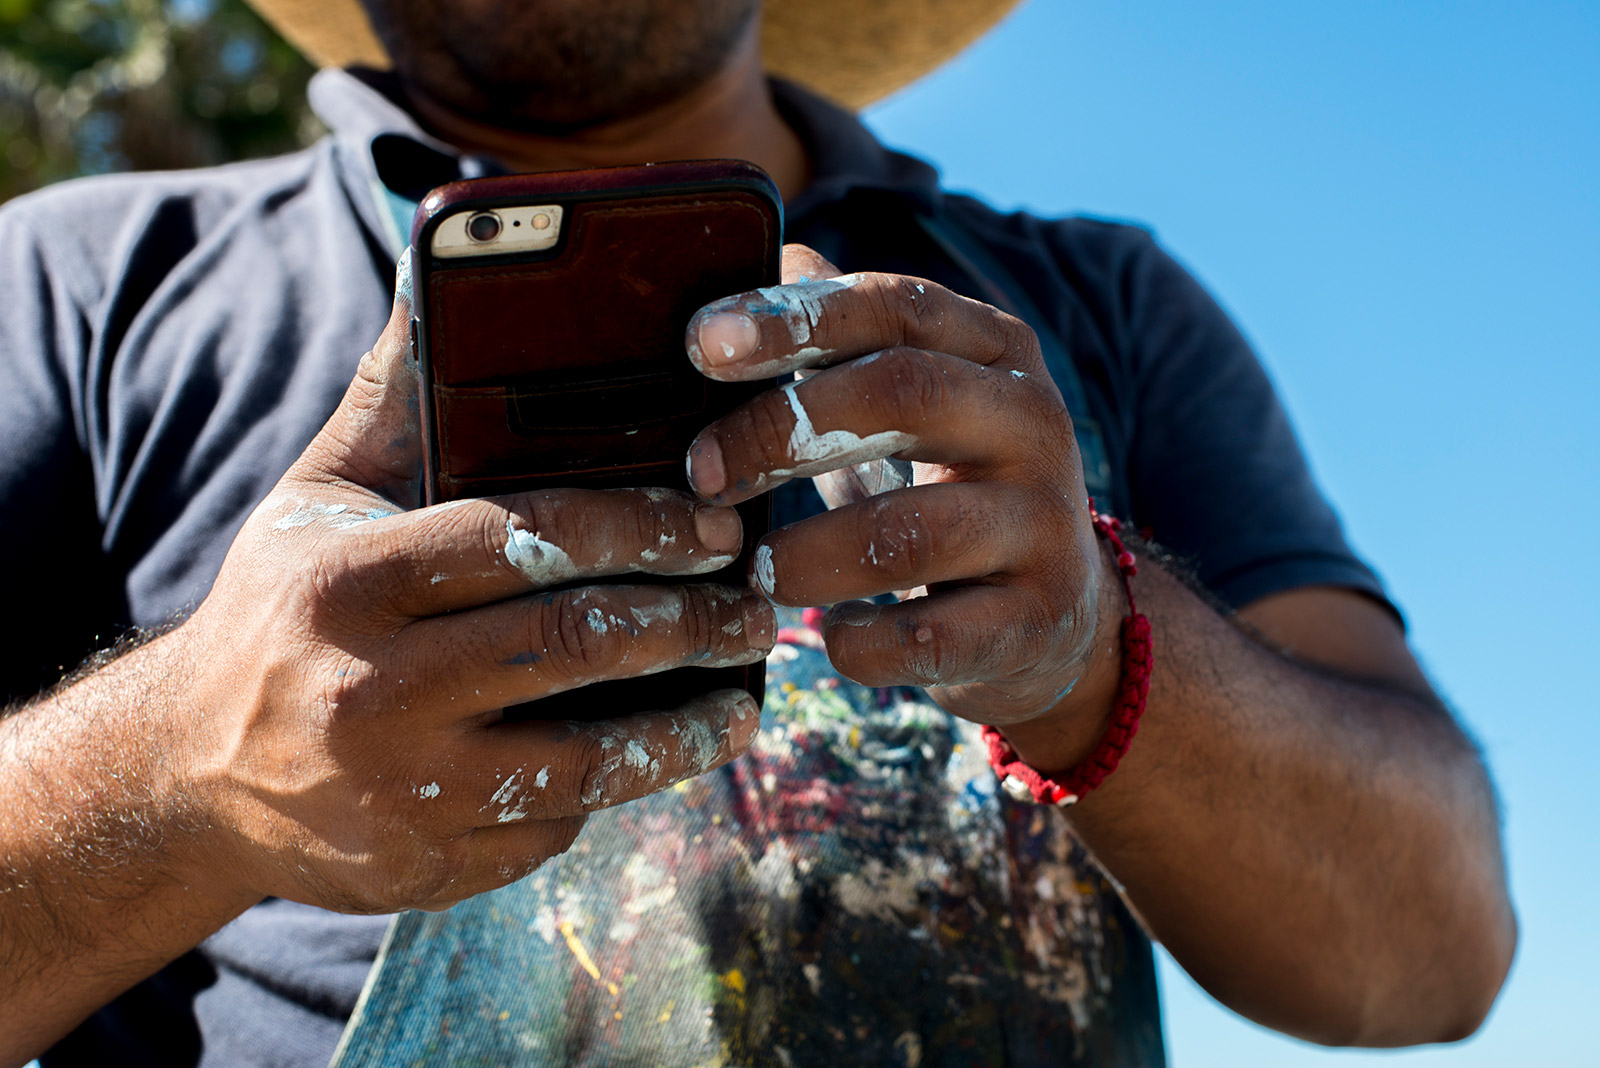 Enrique Chiu, a Tijuana-based muralist, checks his phone with paint-stained hands while taking a break from his work at Friendship Park in Tijuana on Oct. 7, 2017. <em>(Brandon Quester/inewsource)</em>